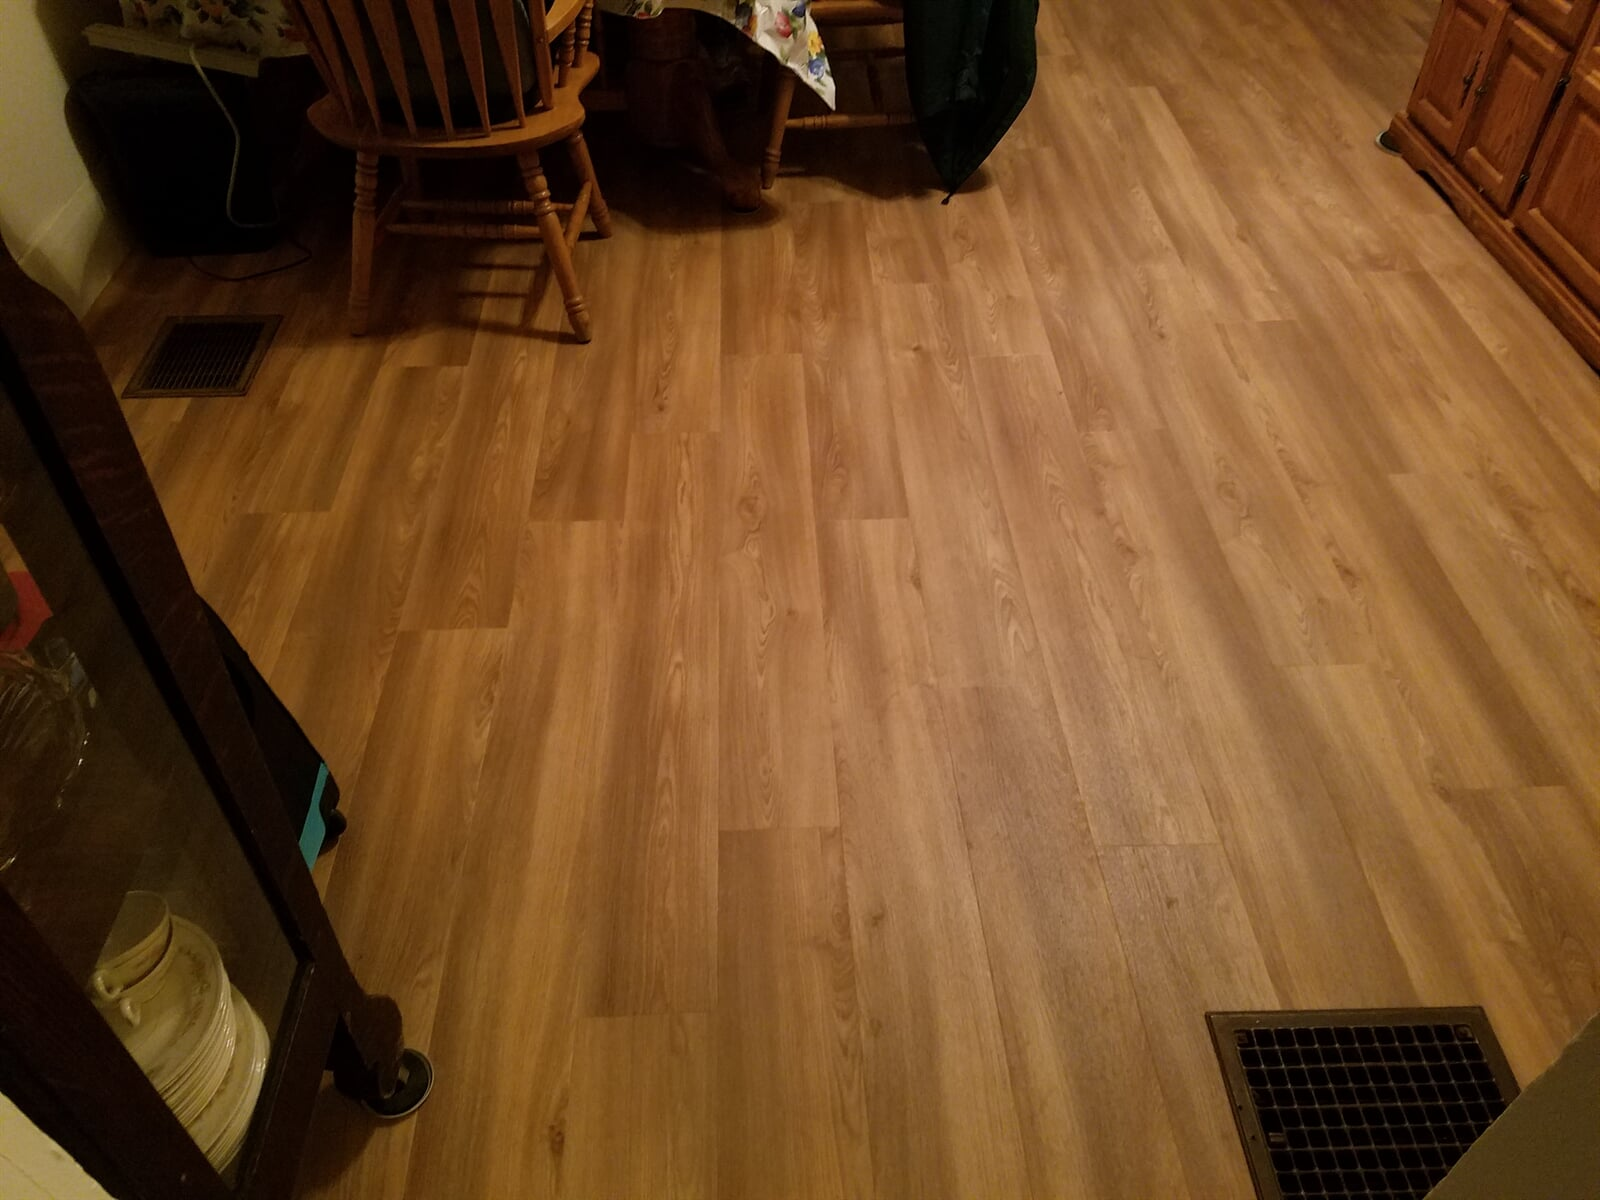 Hardwood Flooring installed by RS Home Repair Services